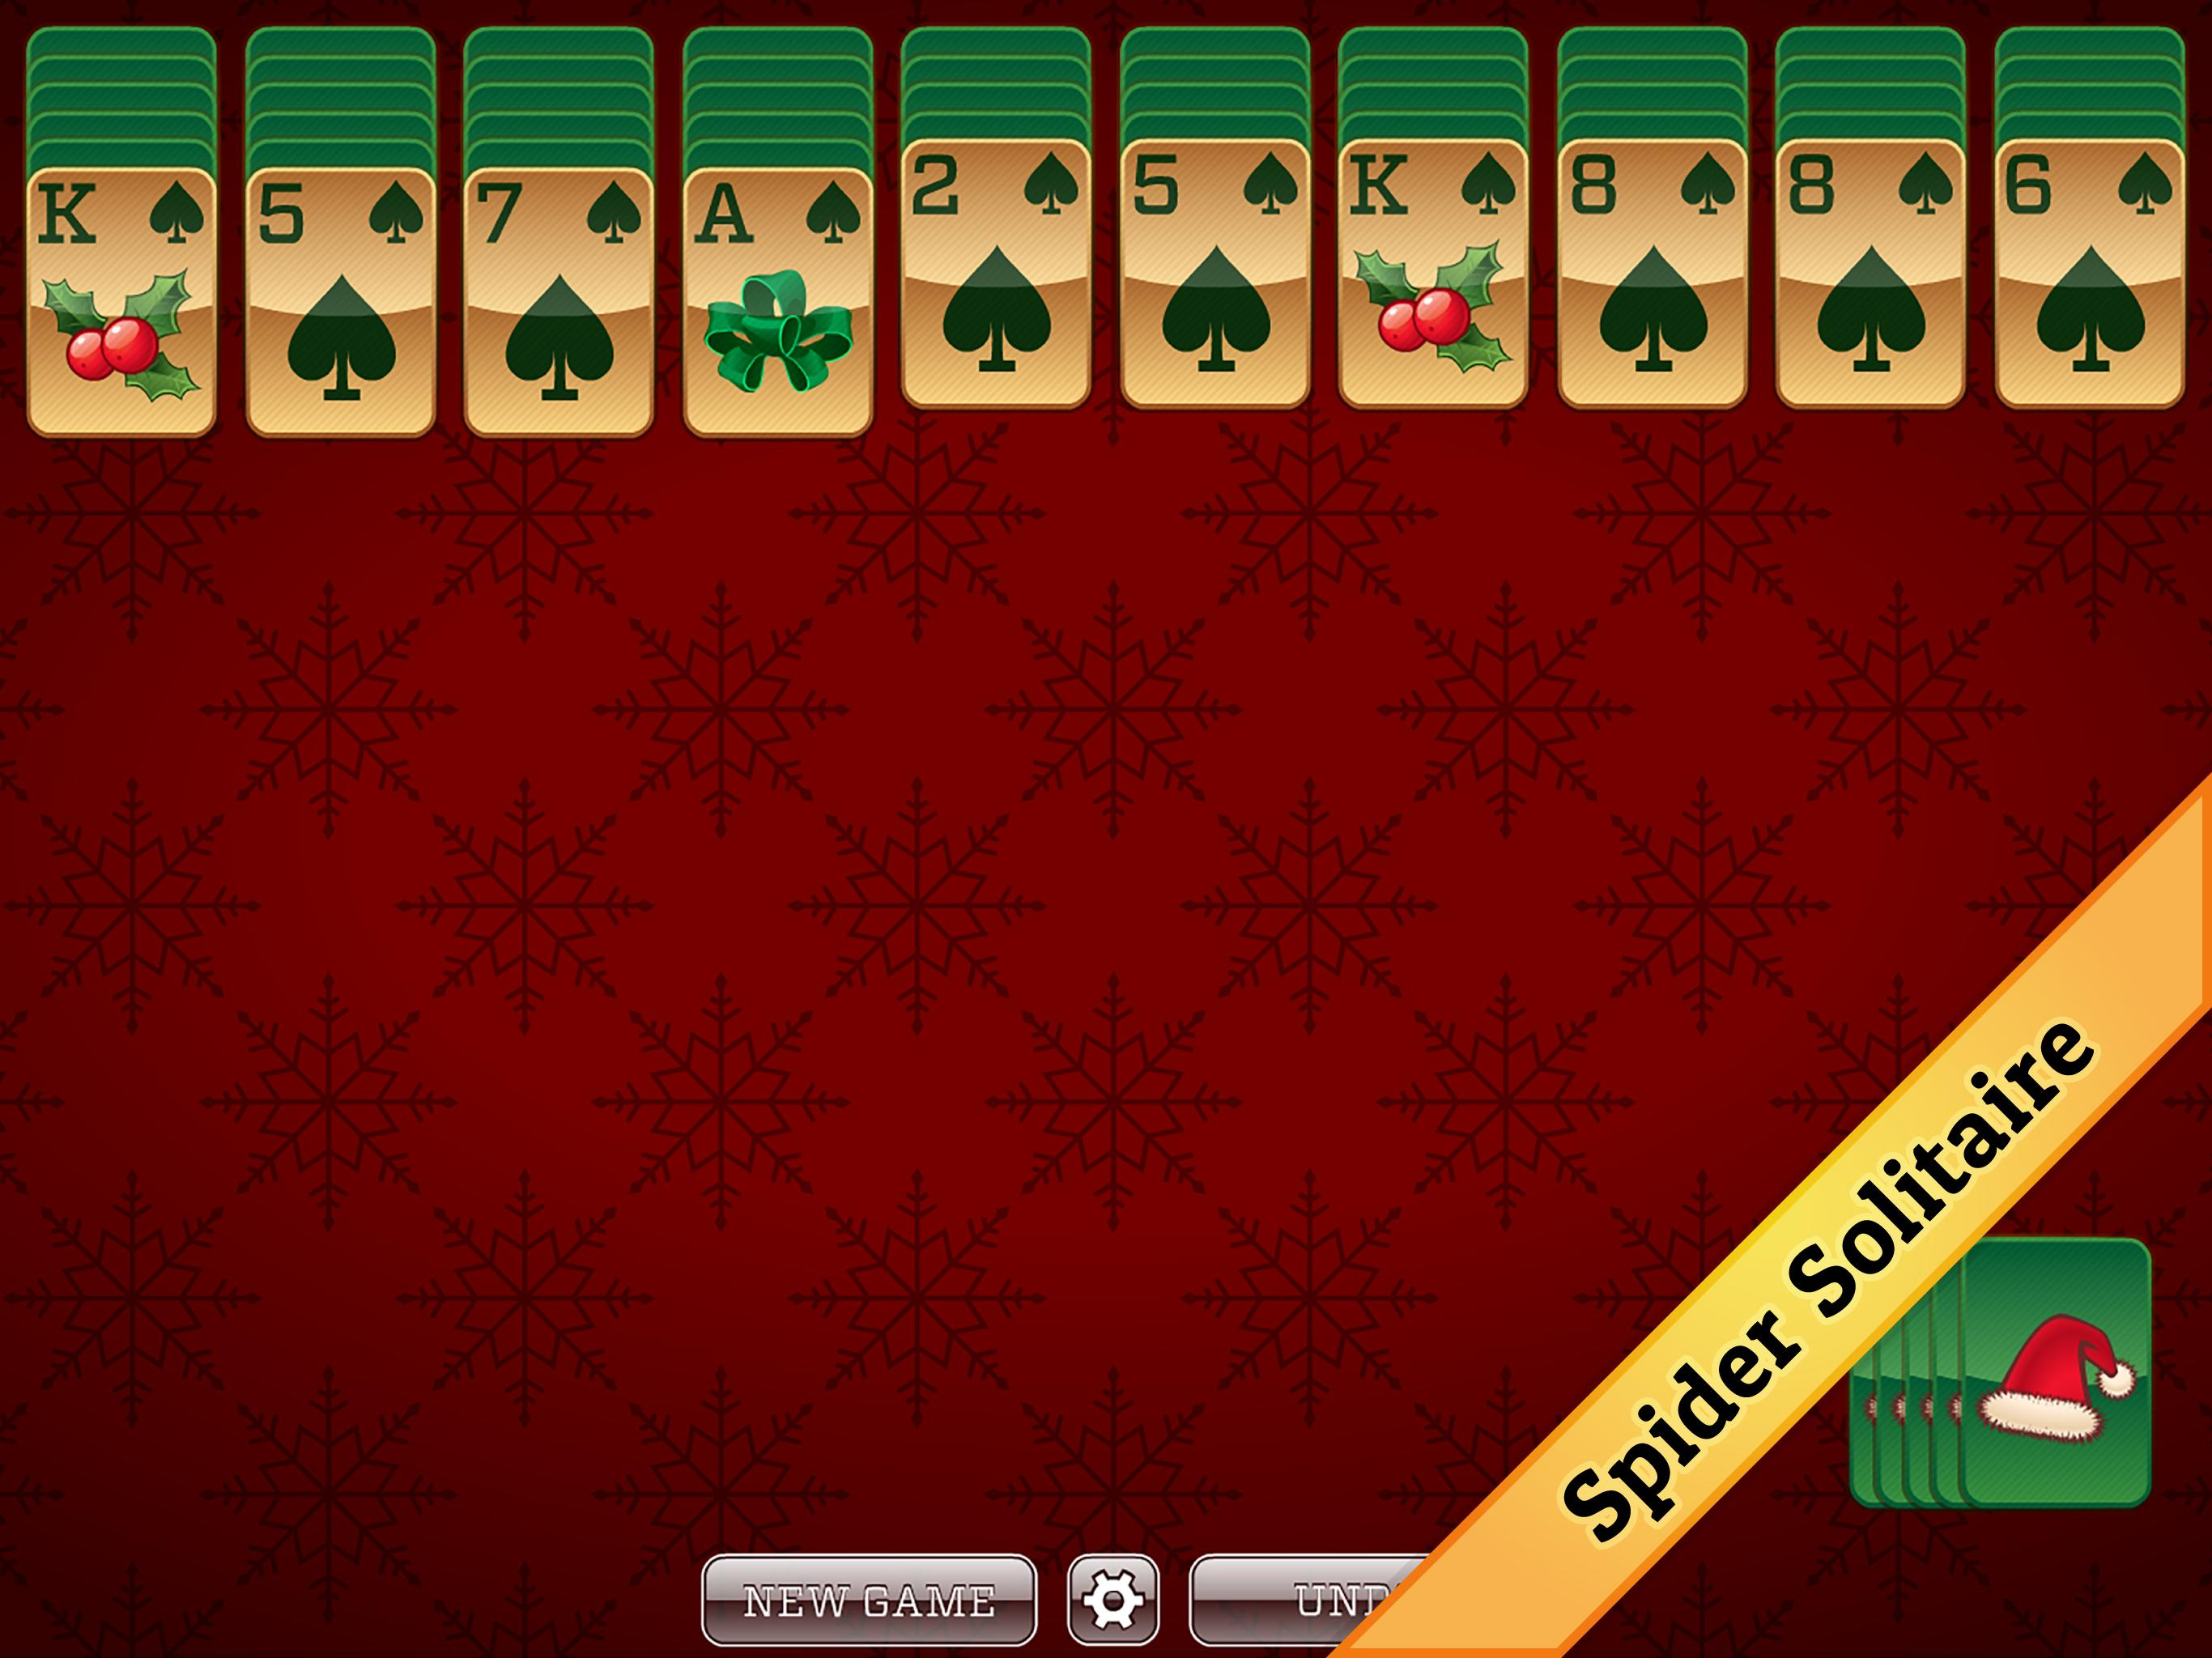 Christmas Solitaire Freecell.Christmas Solitaire For Android Apk Download